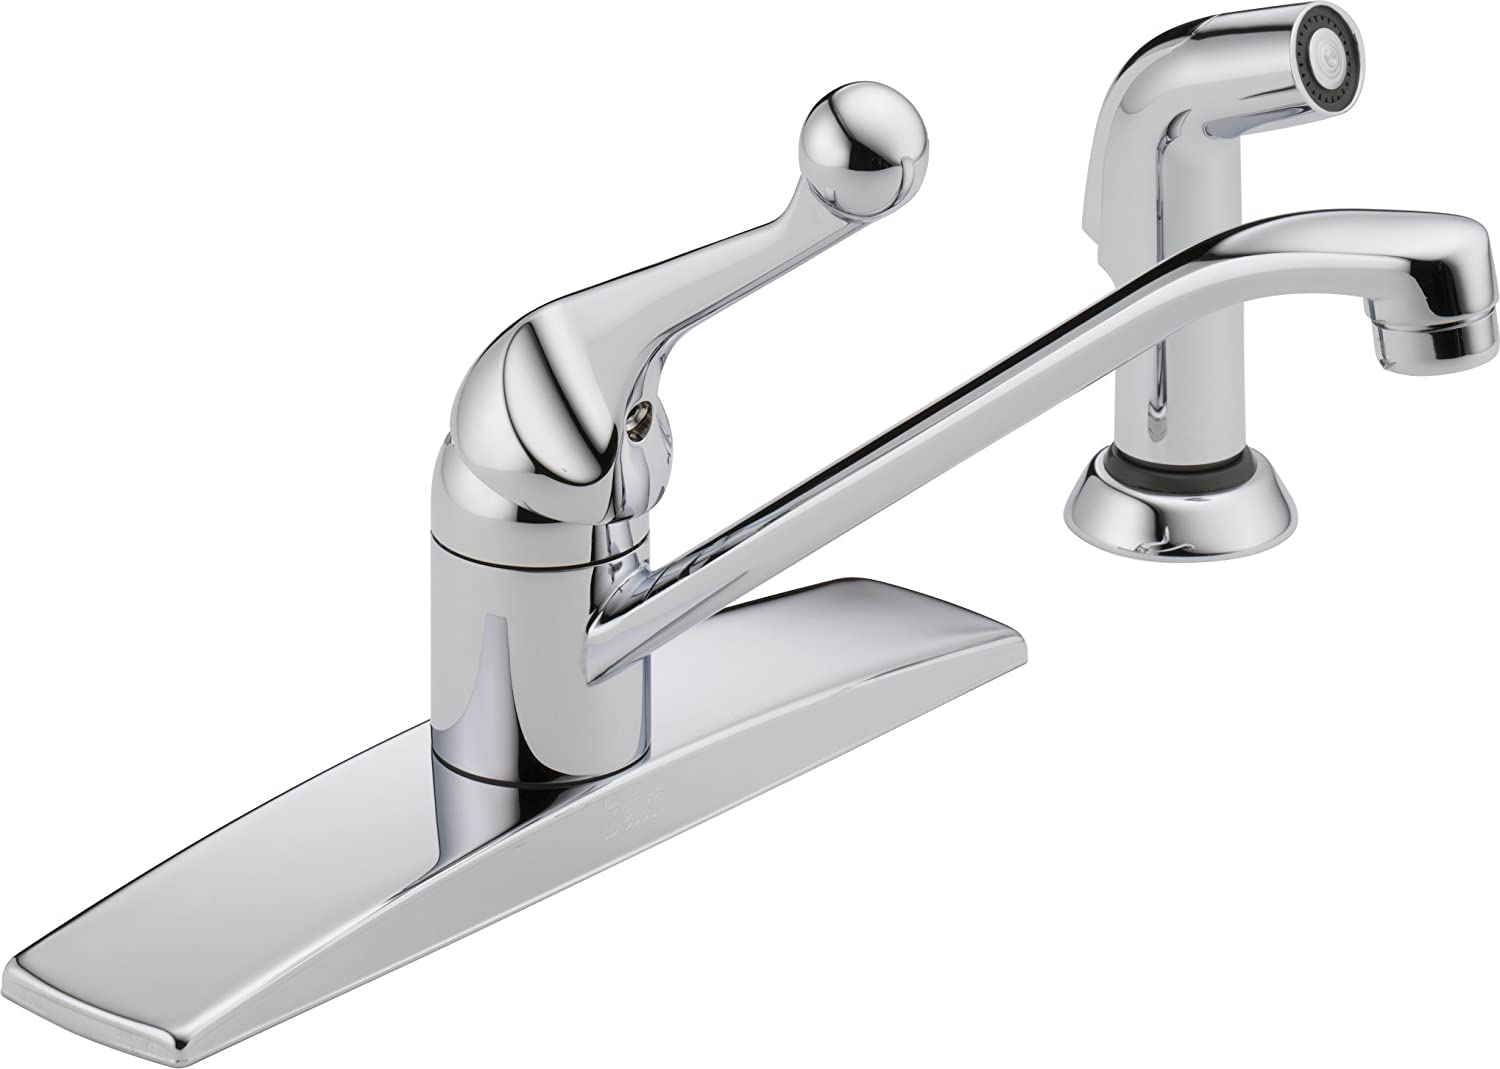 single lg polished asp detail faucet foundations chrome handle kitchen one delta